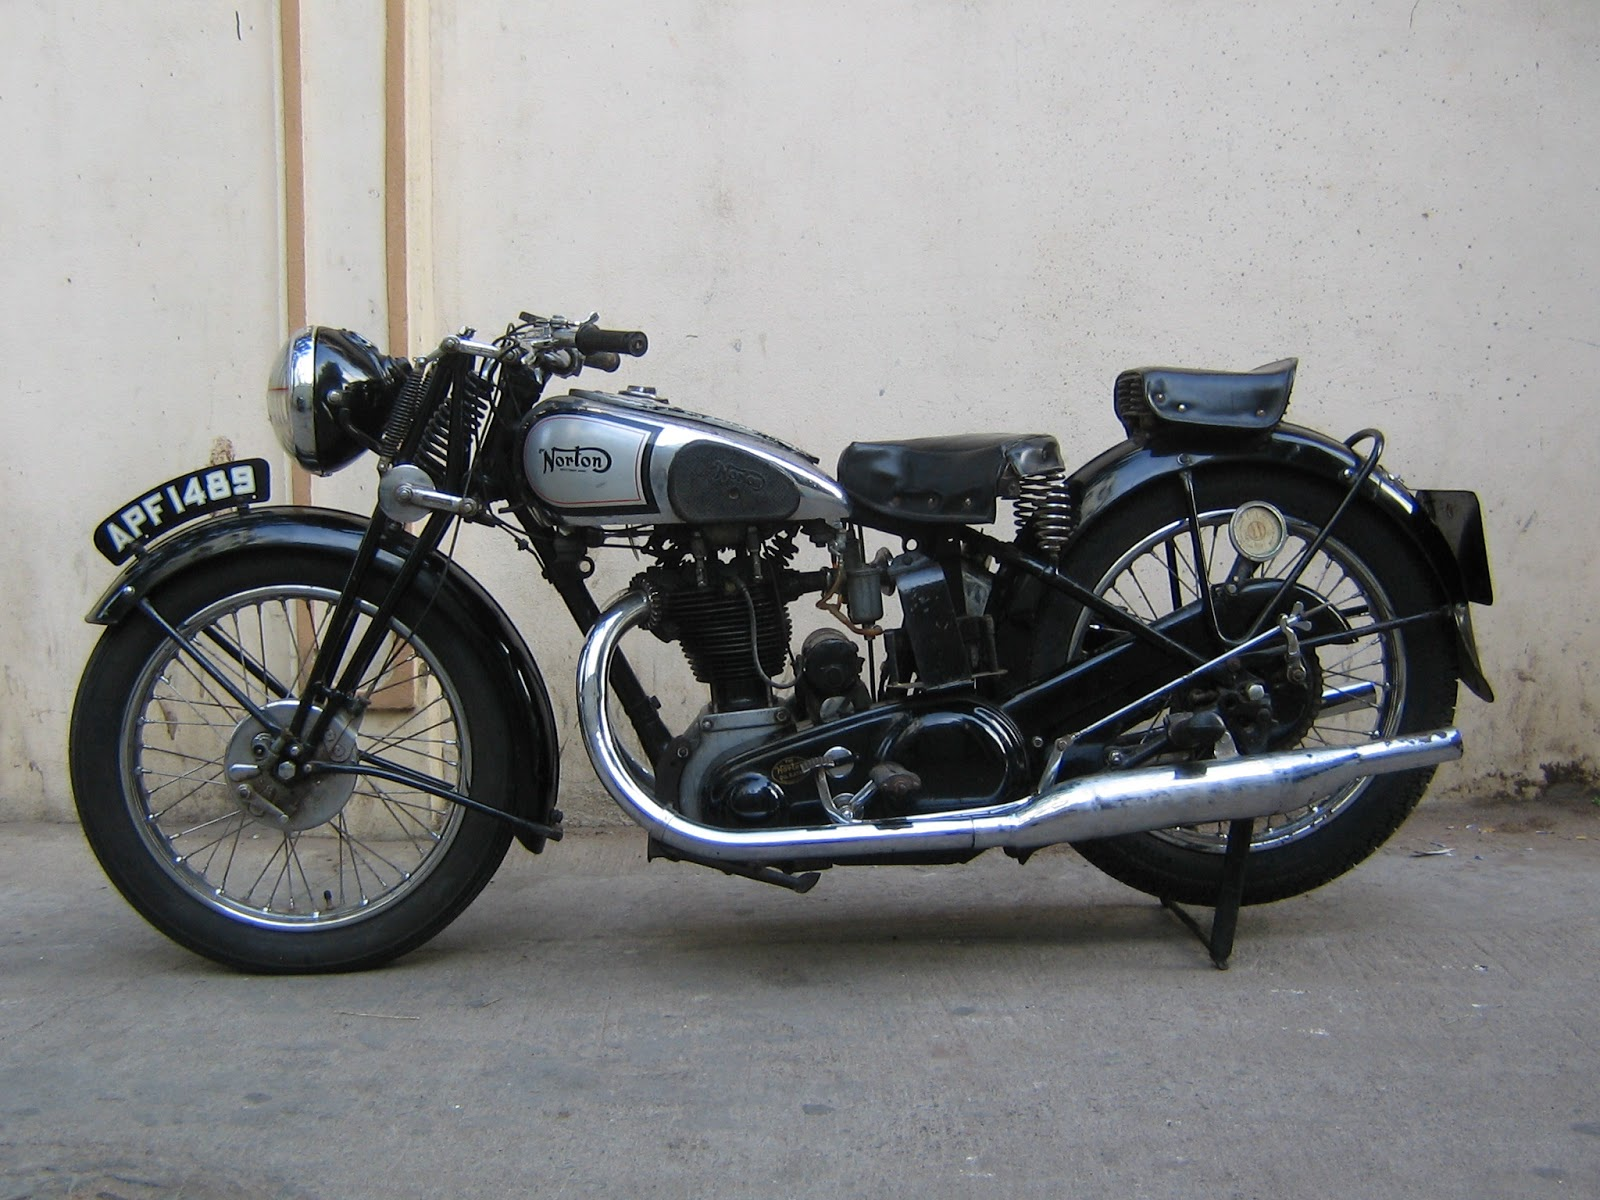 Vintage Norton Motorcycles 1935 Model 55 Norton